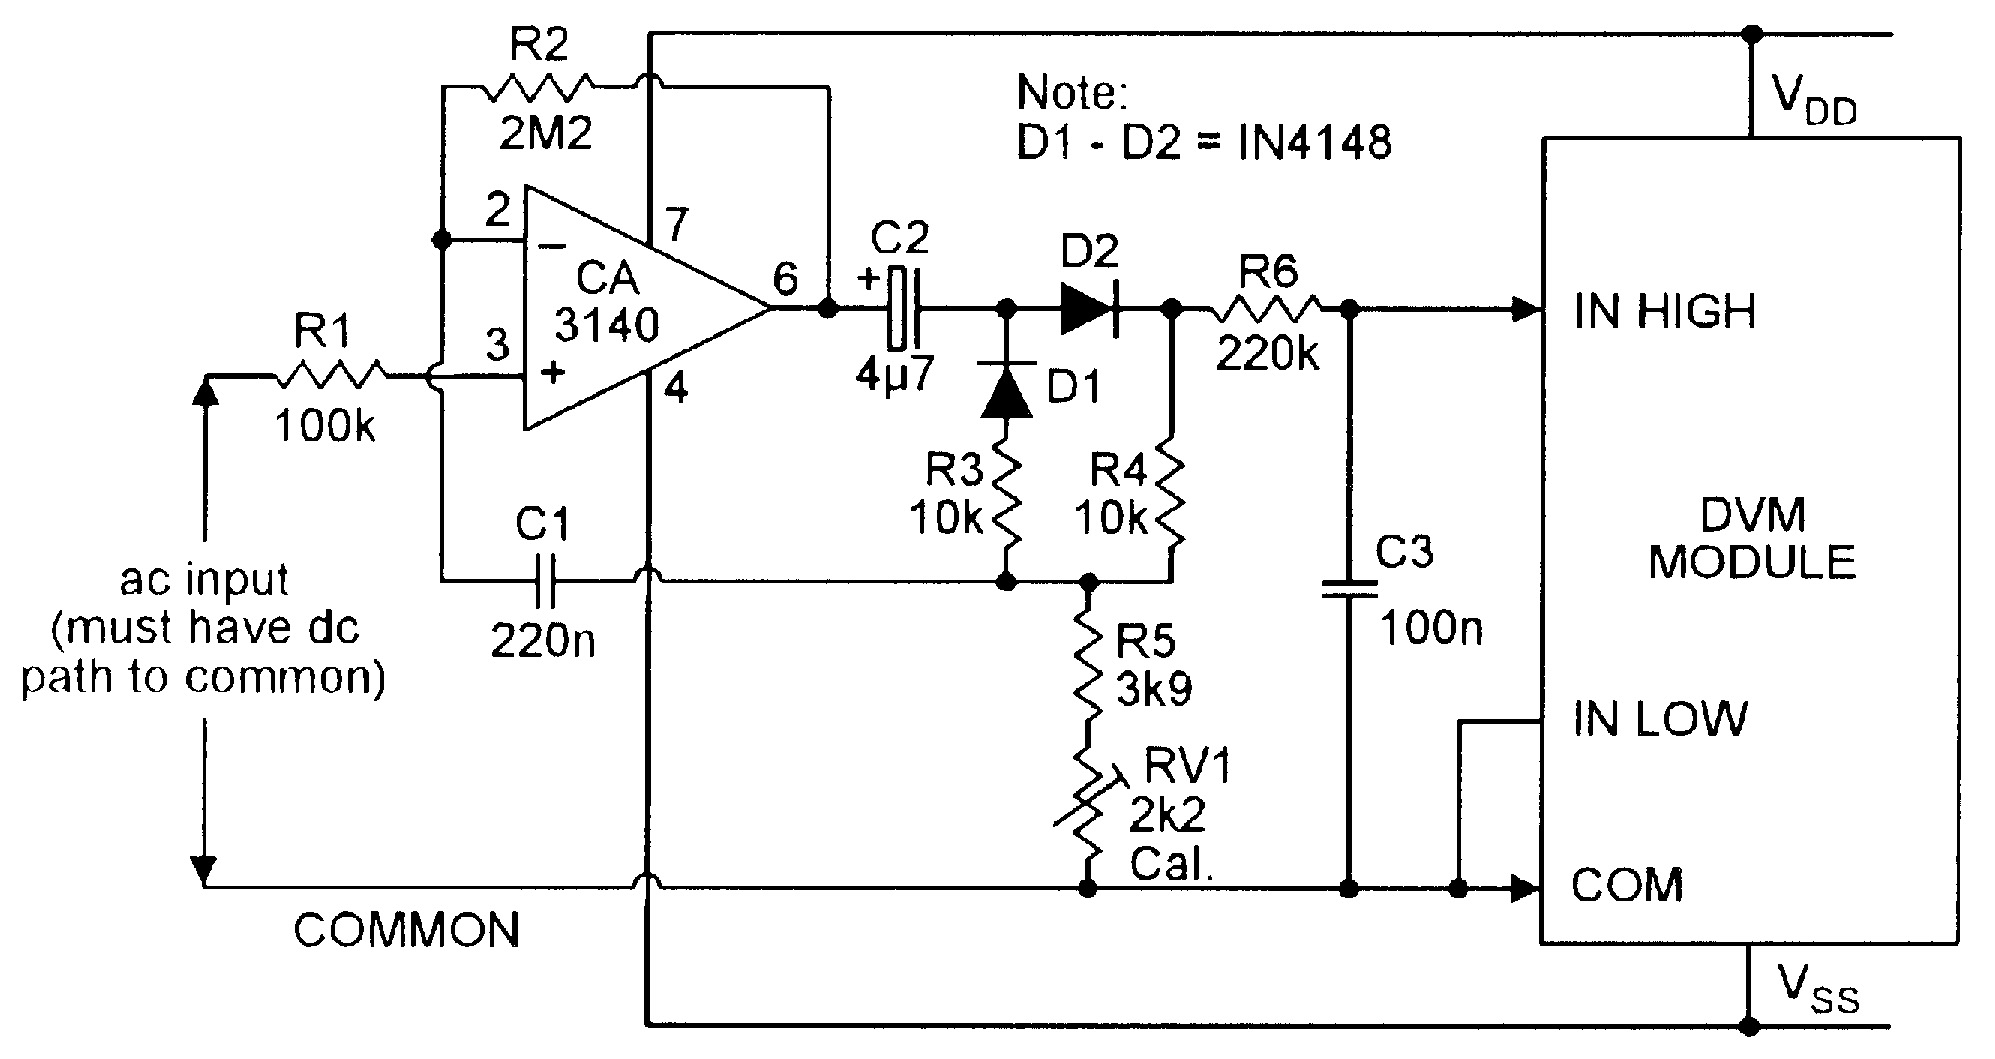 Op Amp Cookbook Part 4 Nuts Volts Magazine Practical Inverting Amplifier Using 741 Ac Dc Converter For Use With Dvm Module